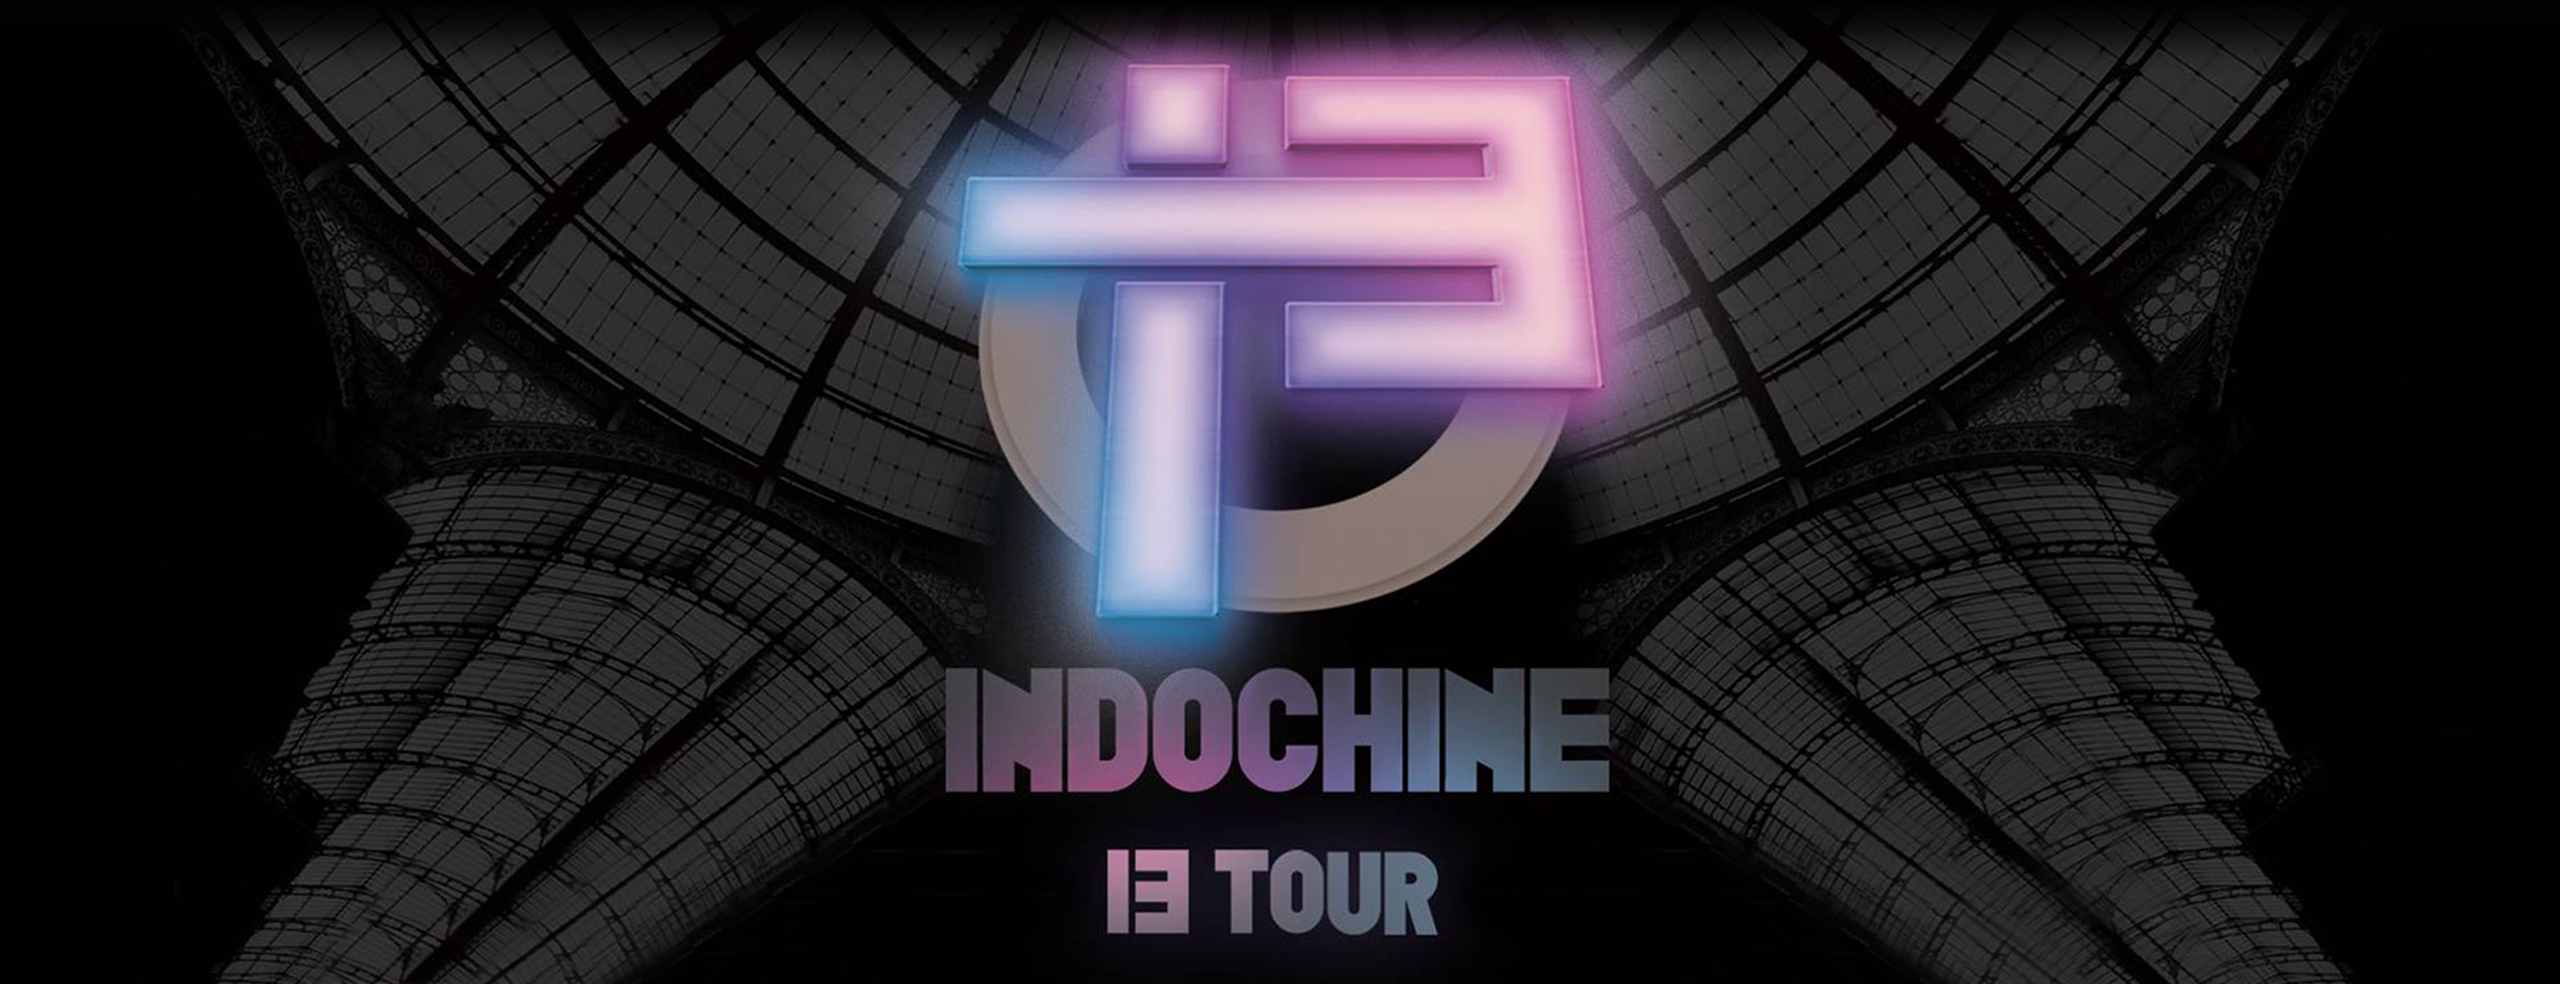 2560x984---Slider-Big-Indochine-2.png